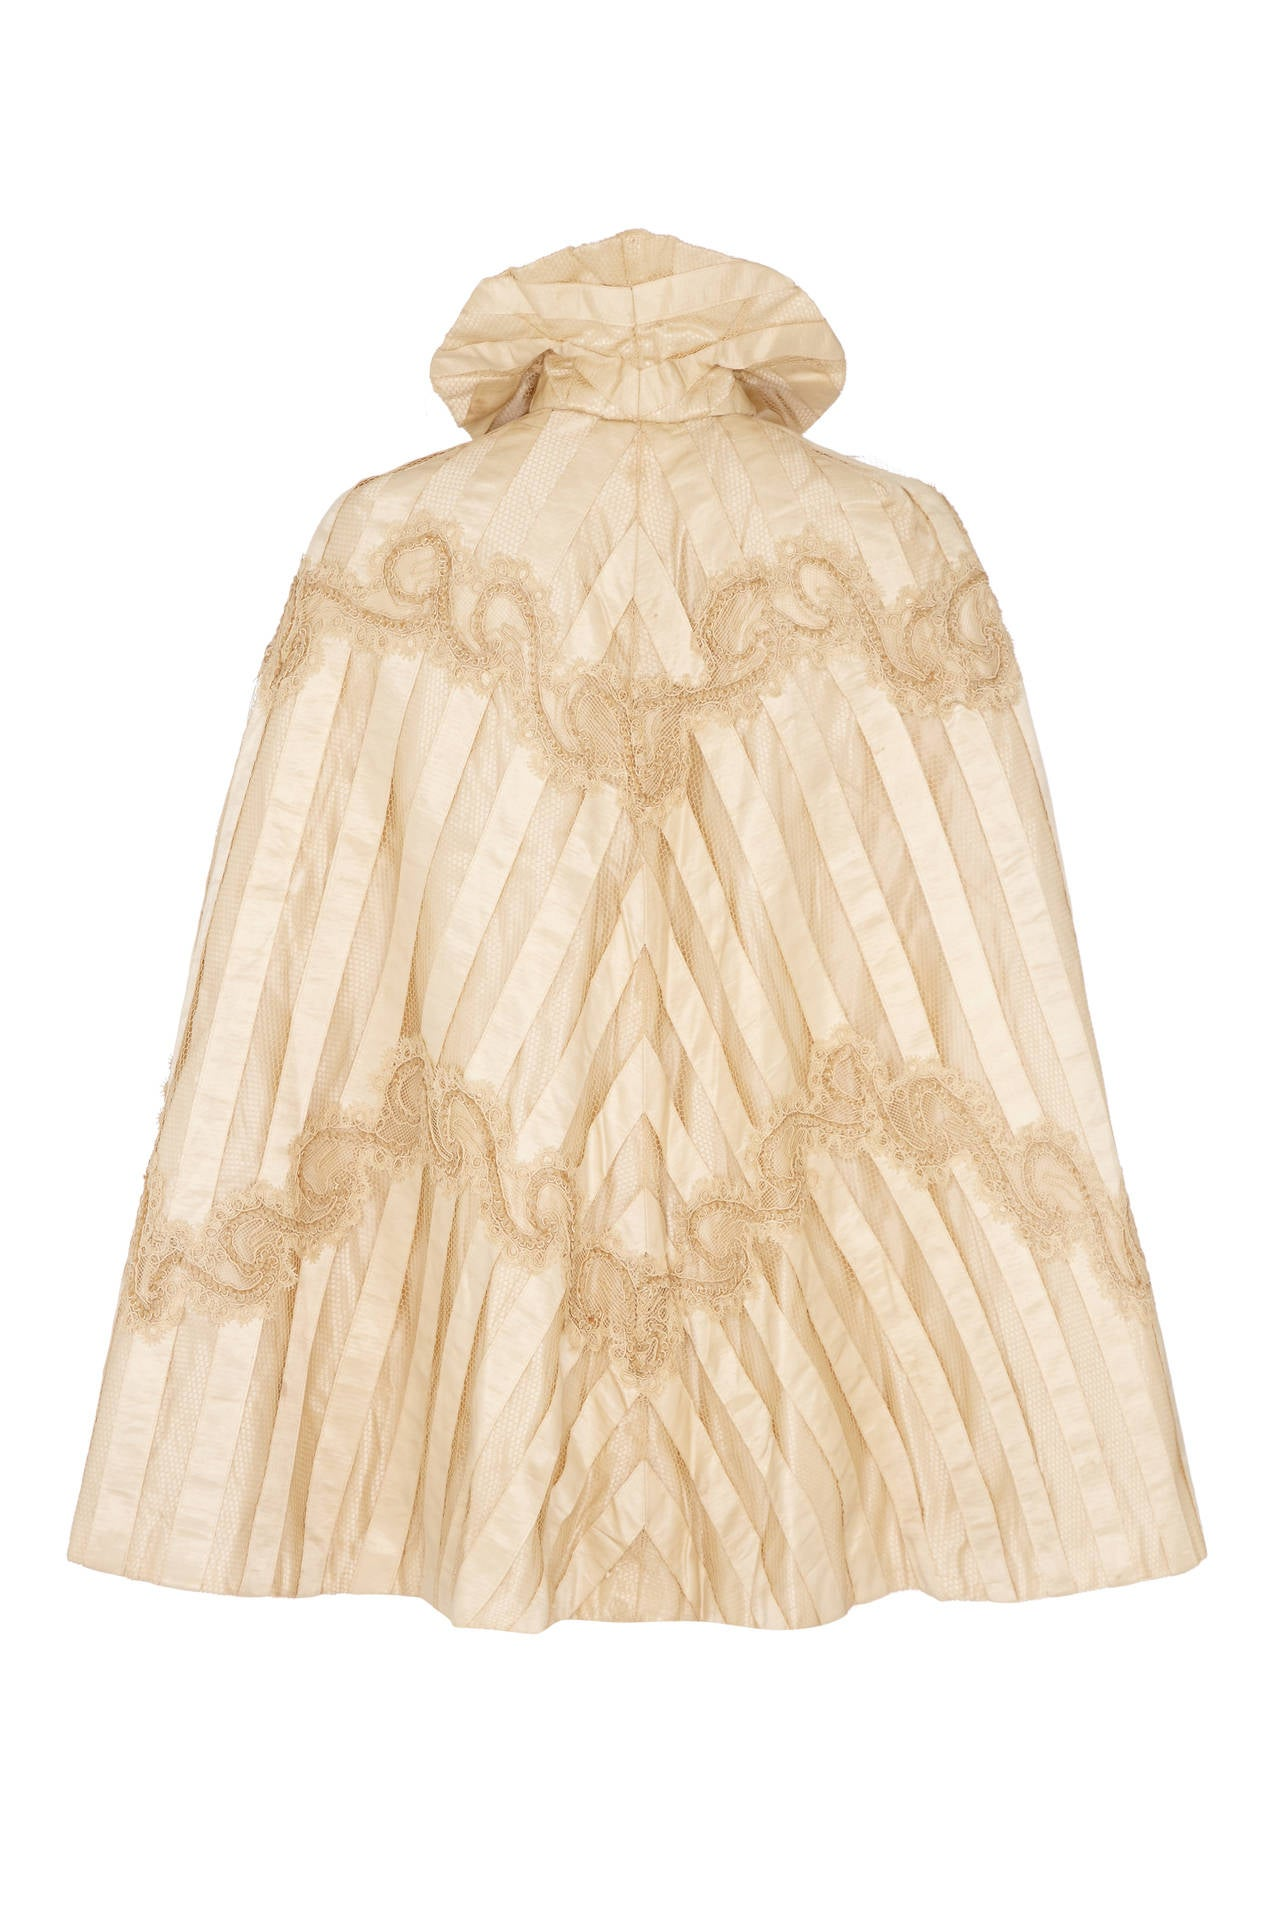 Beautiful cream silk cape dating from the 1880s consisting of stripes of silk ribbon and silk netting with an intricate corded and lace applique.  There are no makers labels but this is an outstanding piece and was most likely originally a wedding